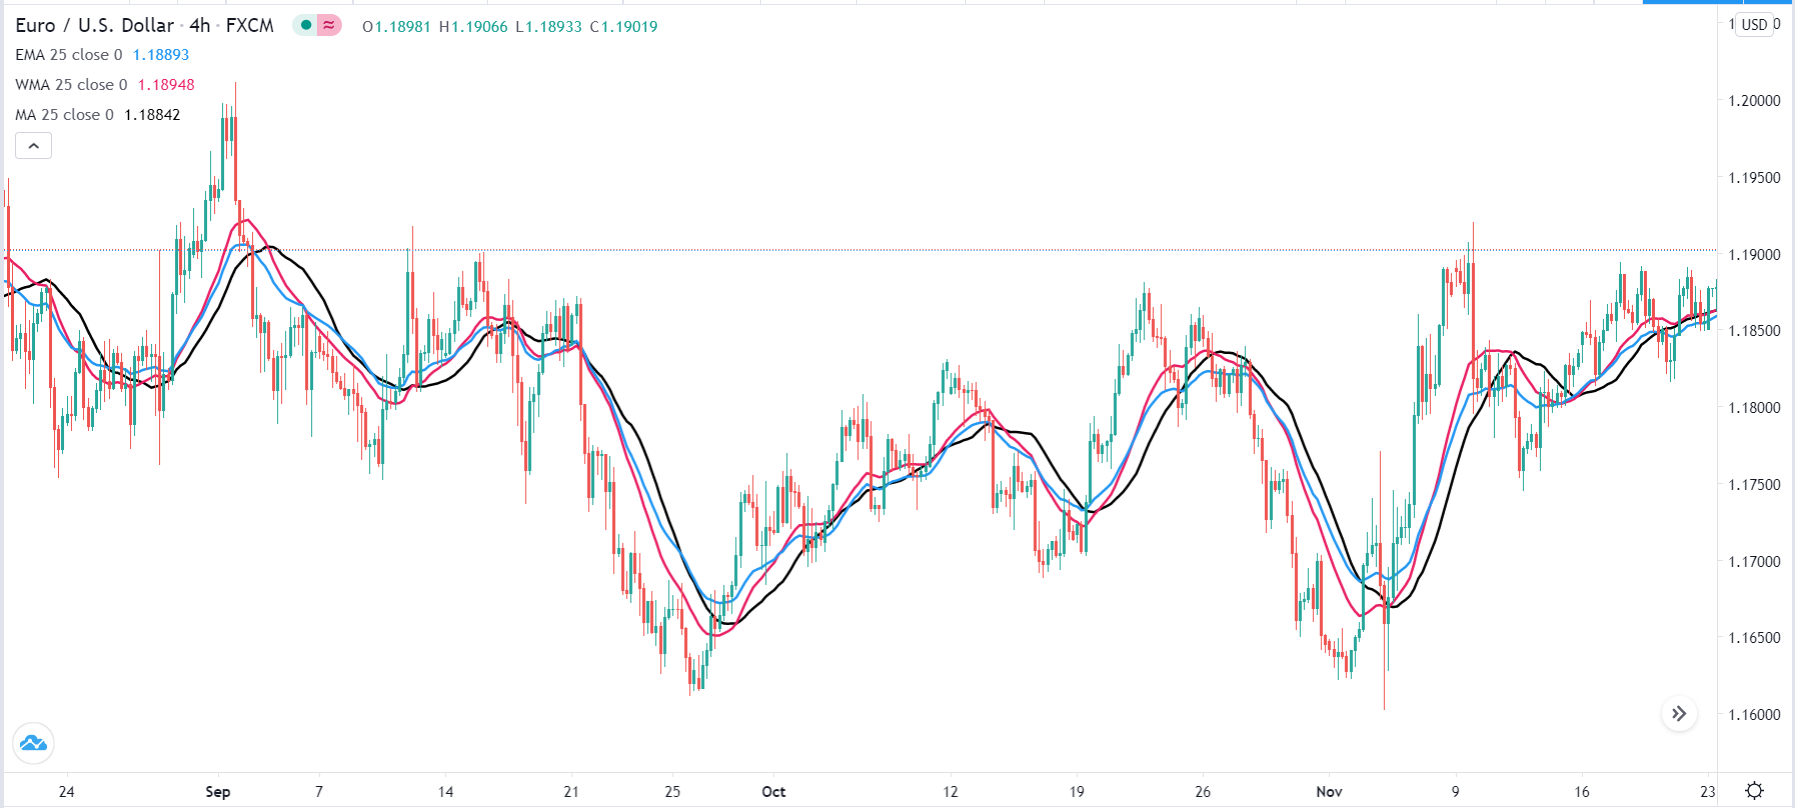 EUR/USD with a 25-period WMA, EMA, and SMA